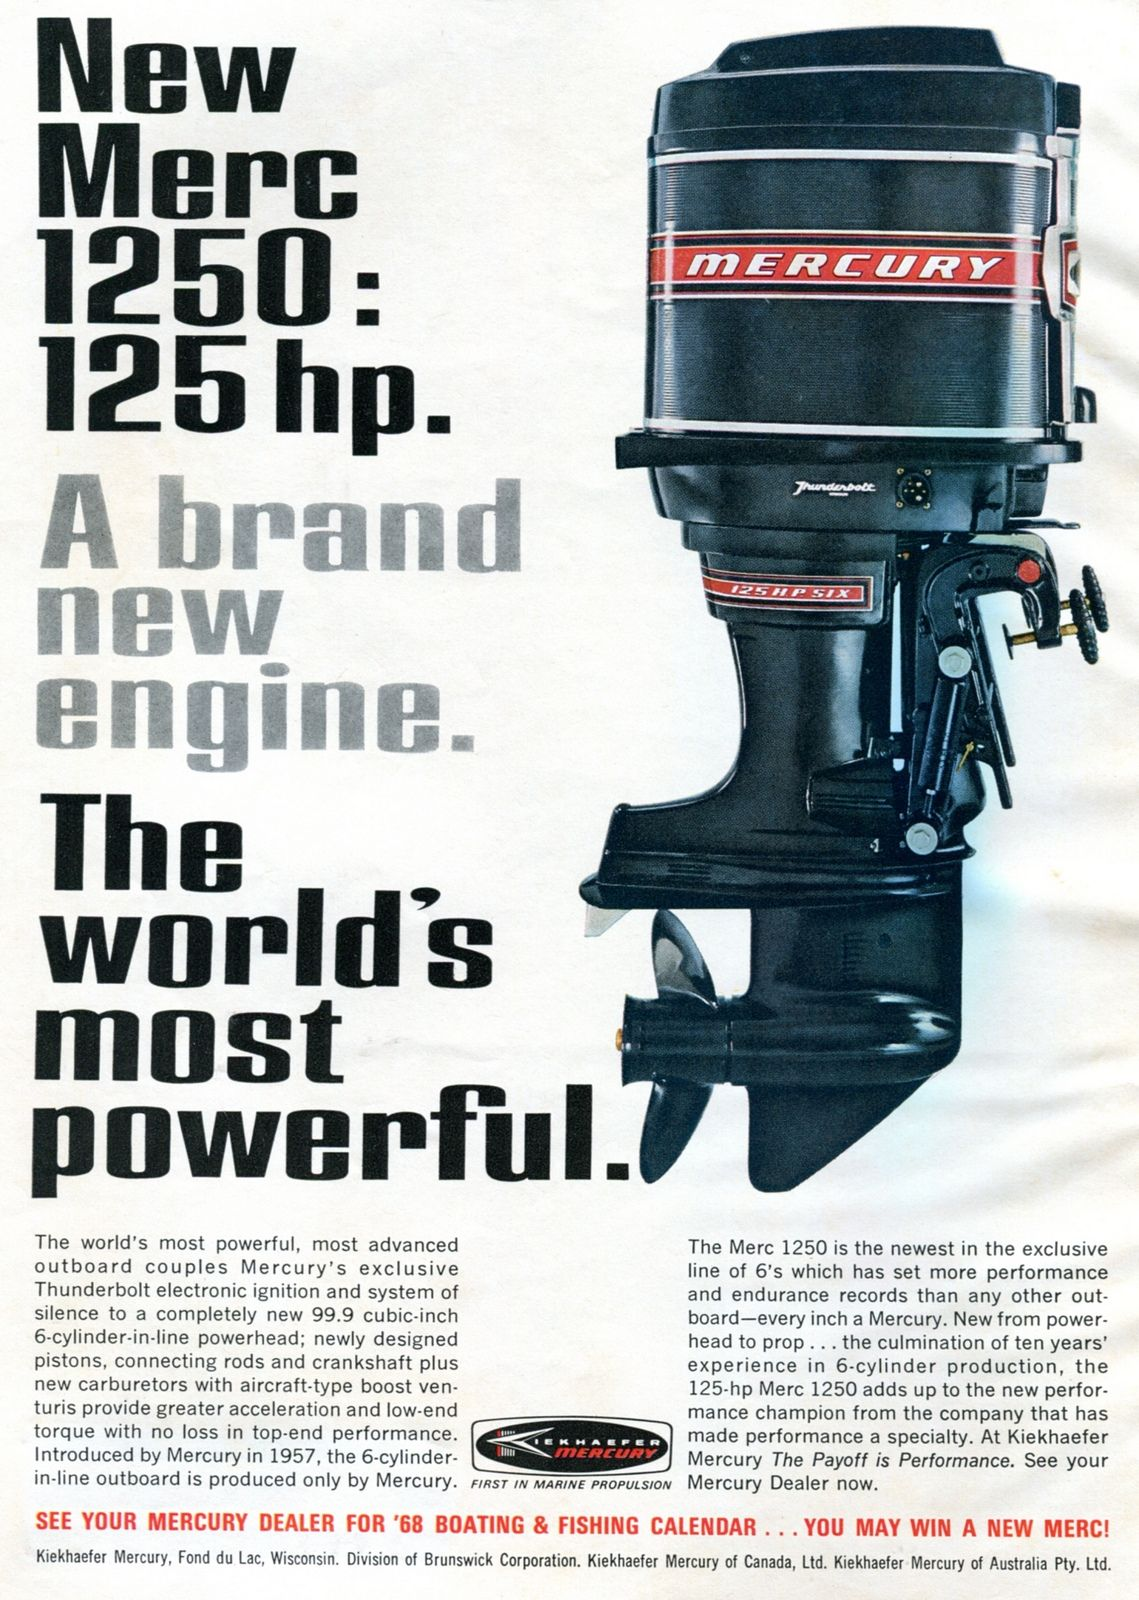 1968 Mercury 1250 Outboard Motor Advertising Outdoor Life January 1968 Mercury Boats Outboard Motors Outboard